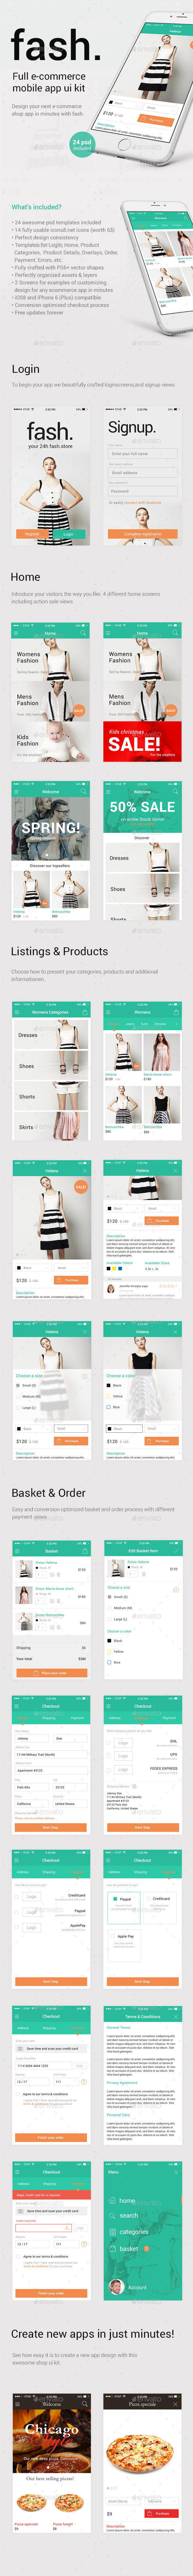 Fash - A Mobile E-Commerce Shop UI Design Kit - User Interfaces Web Elements